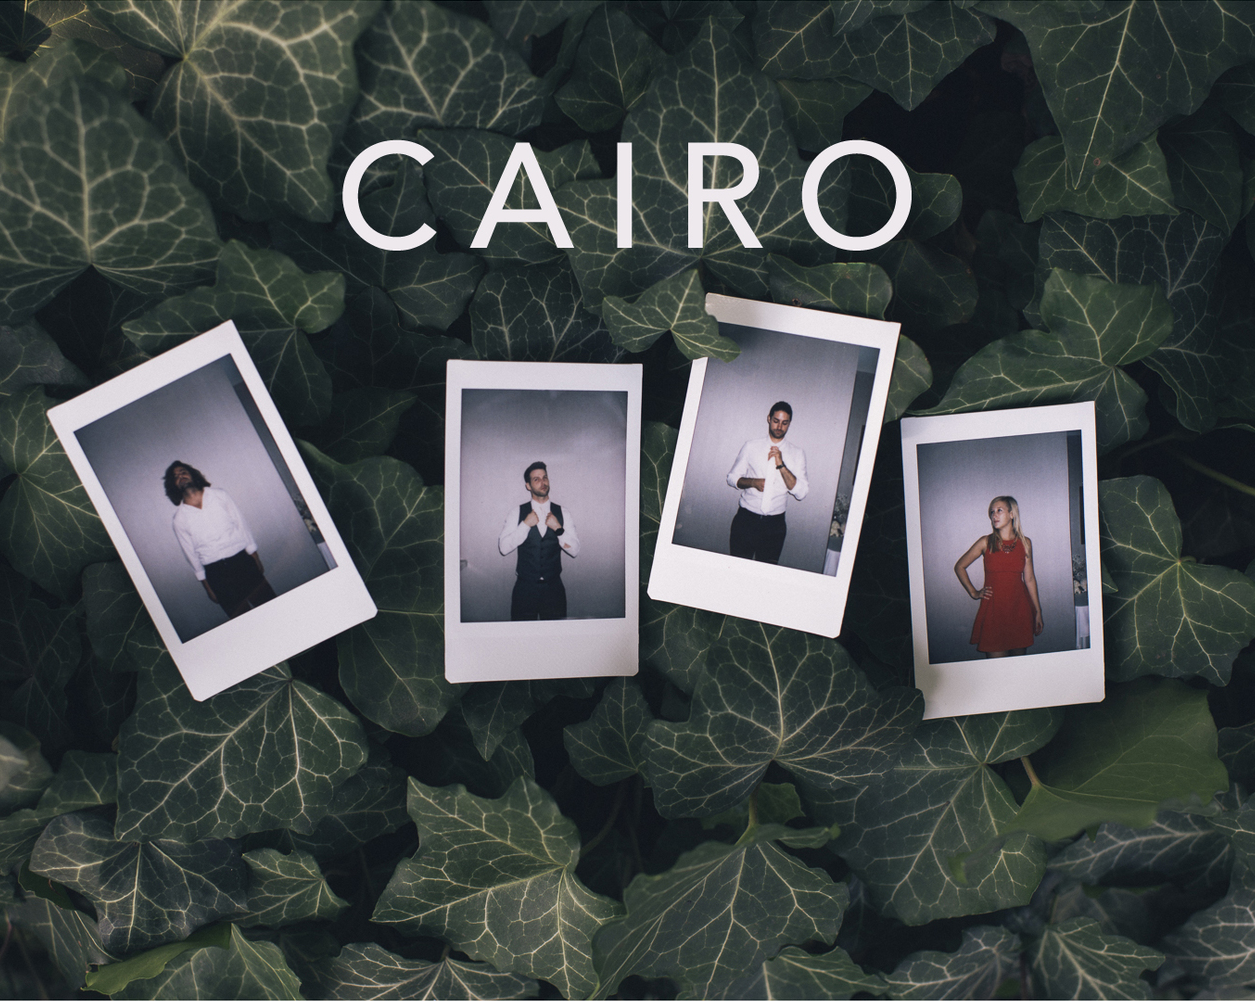 Cairo Debut LP NYG Productions